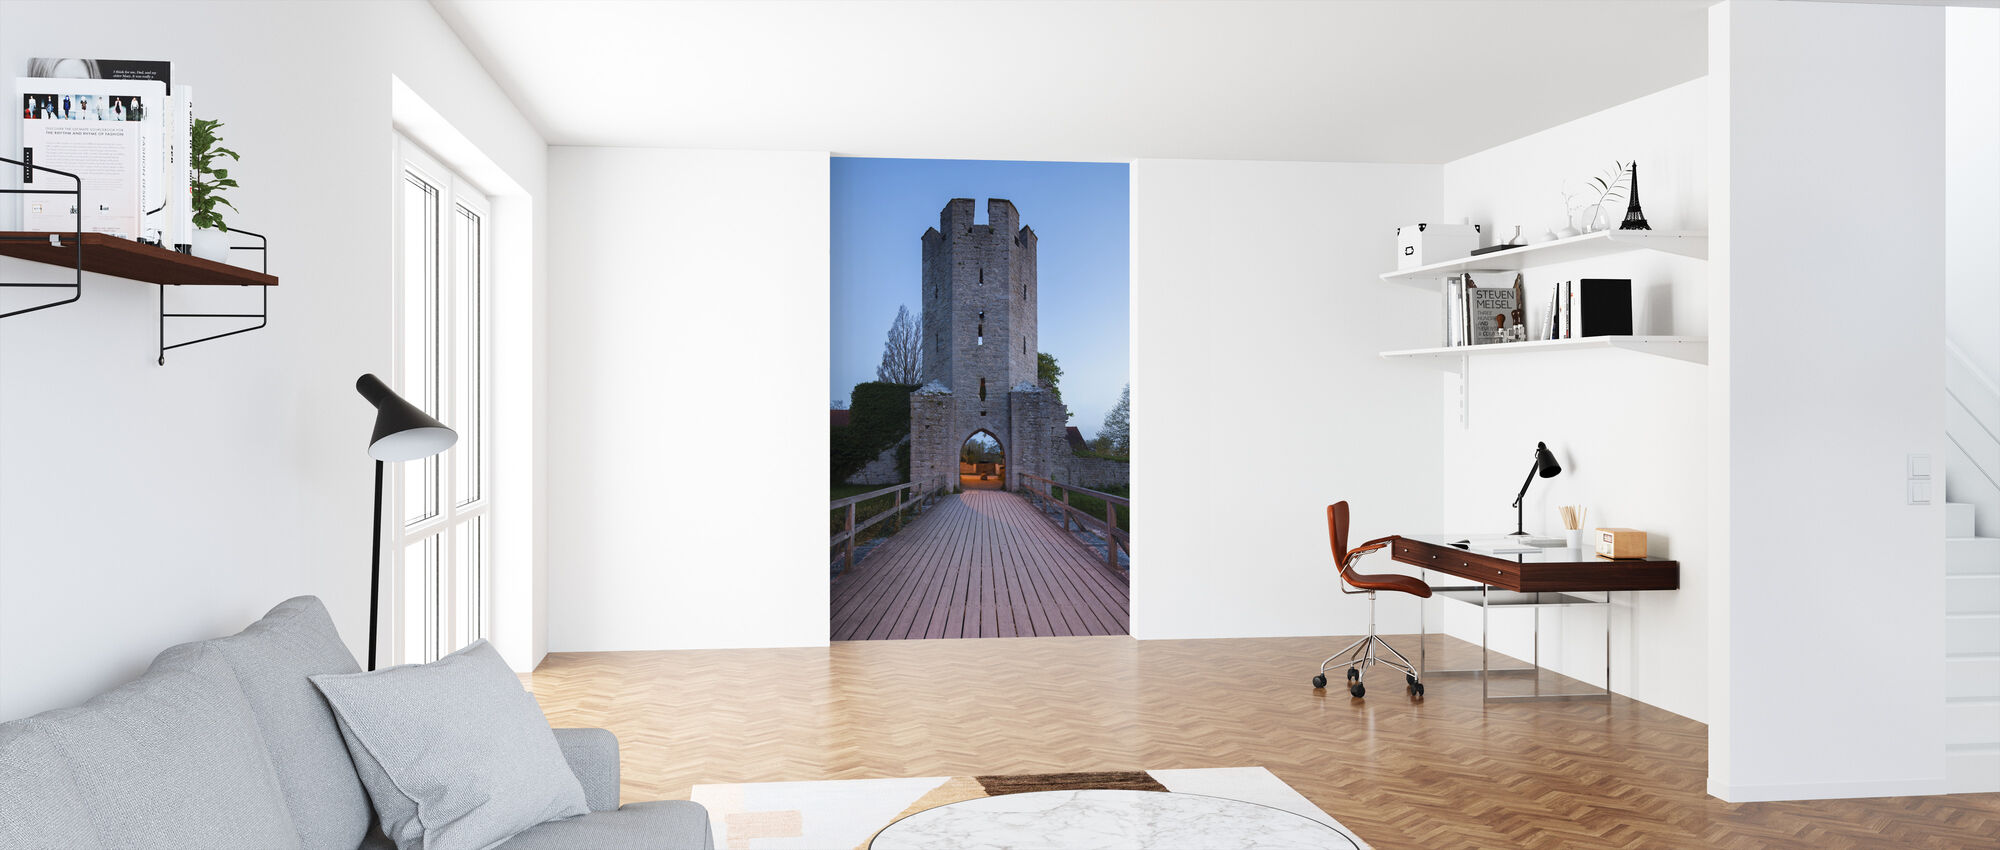 Old Building in Visby, Gotland - Wallpaper - Office